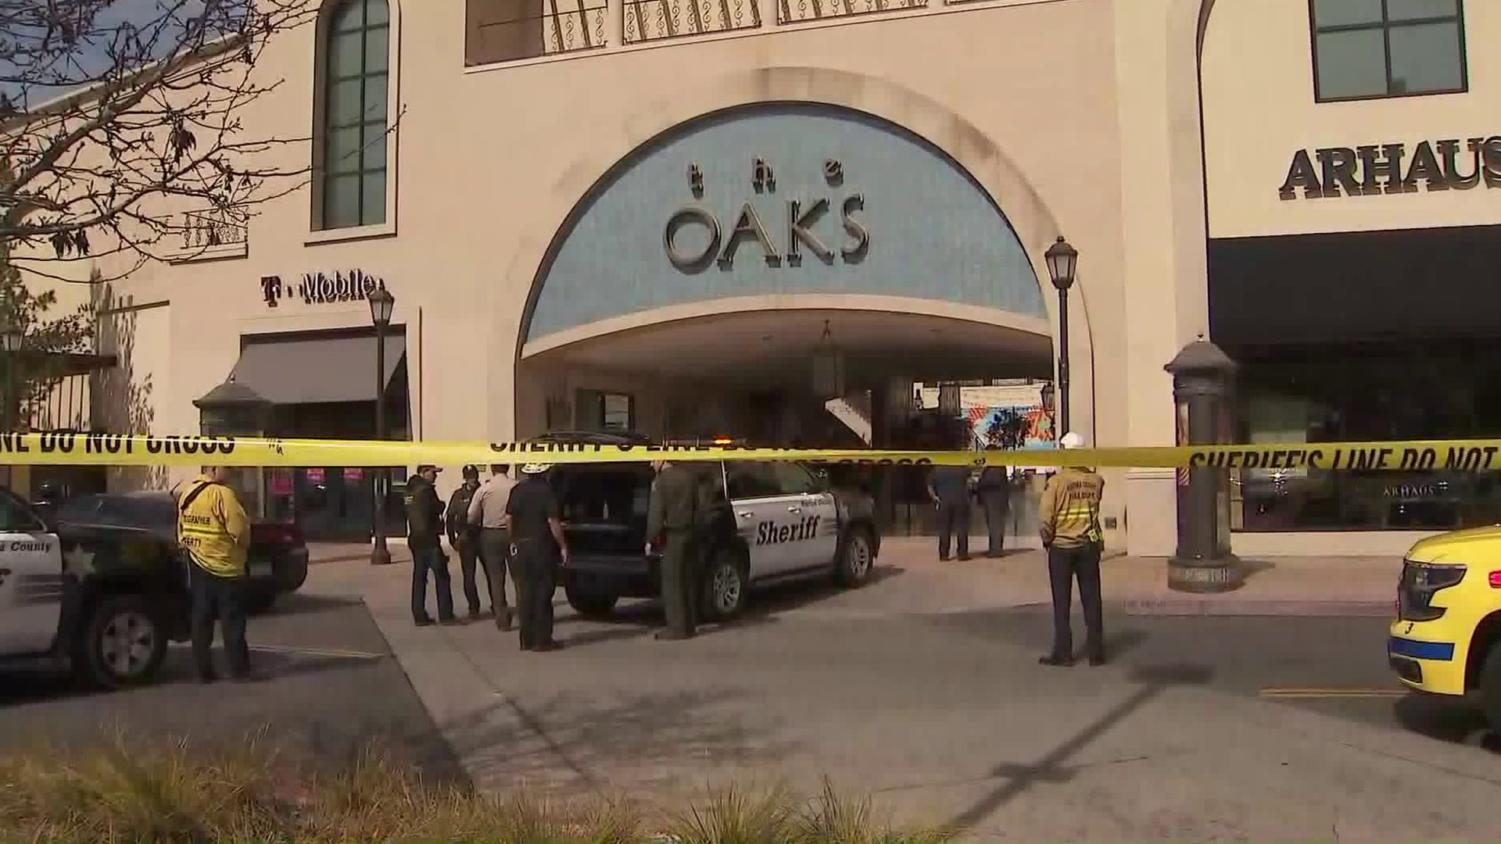 Police responding to the scene at The Oaks Mall in Thousand Oaks. Photo taken from OnScene.TV